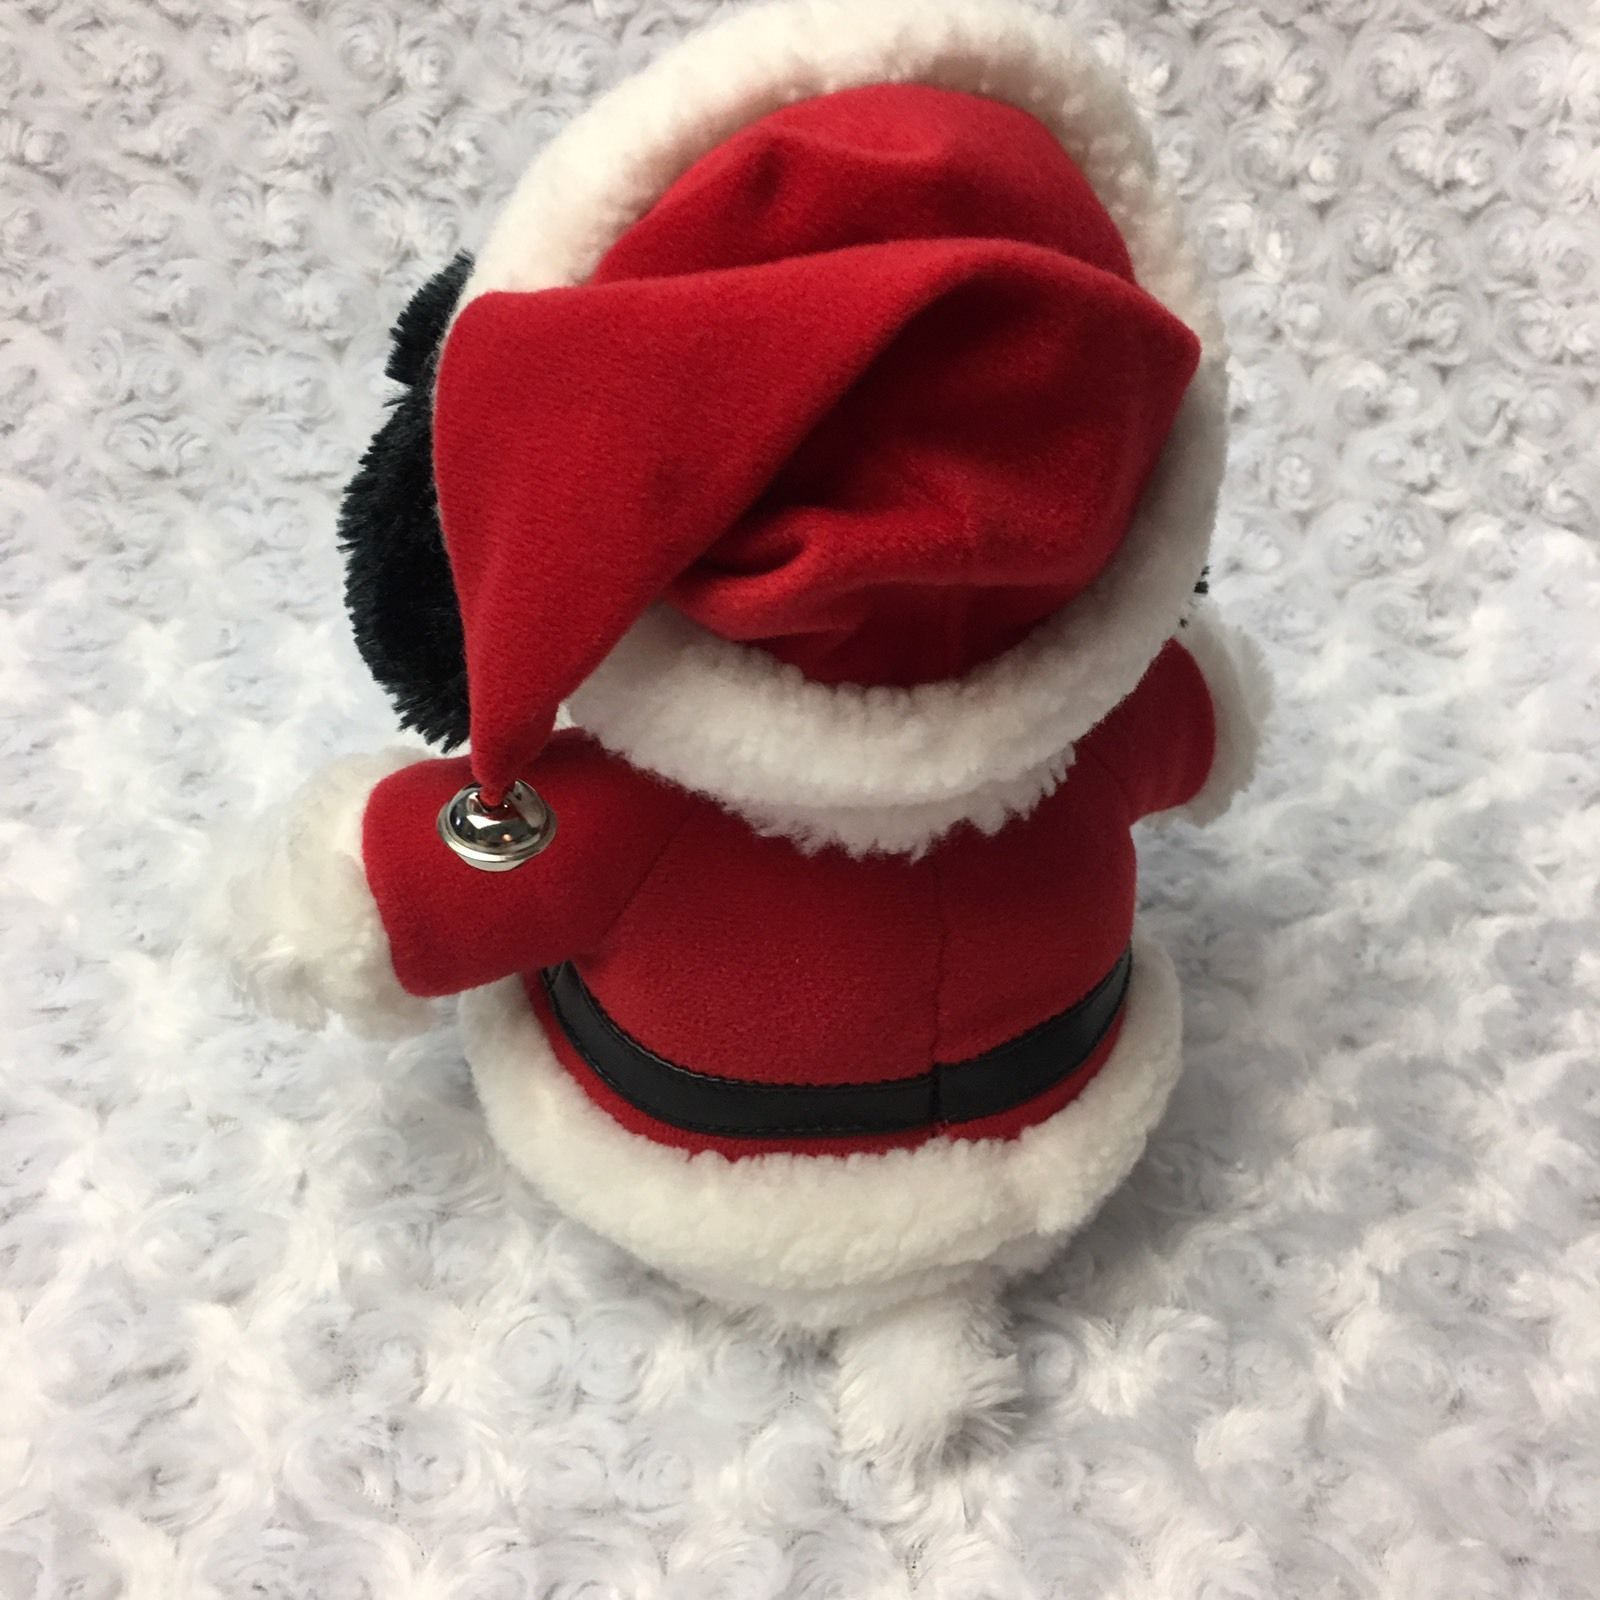 Snoopy Peanuts Hallmark Medium Christmas Holiday Stuffed Plush as Santa Bell Hat image 6